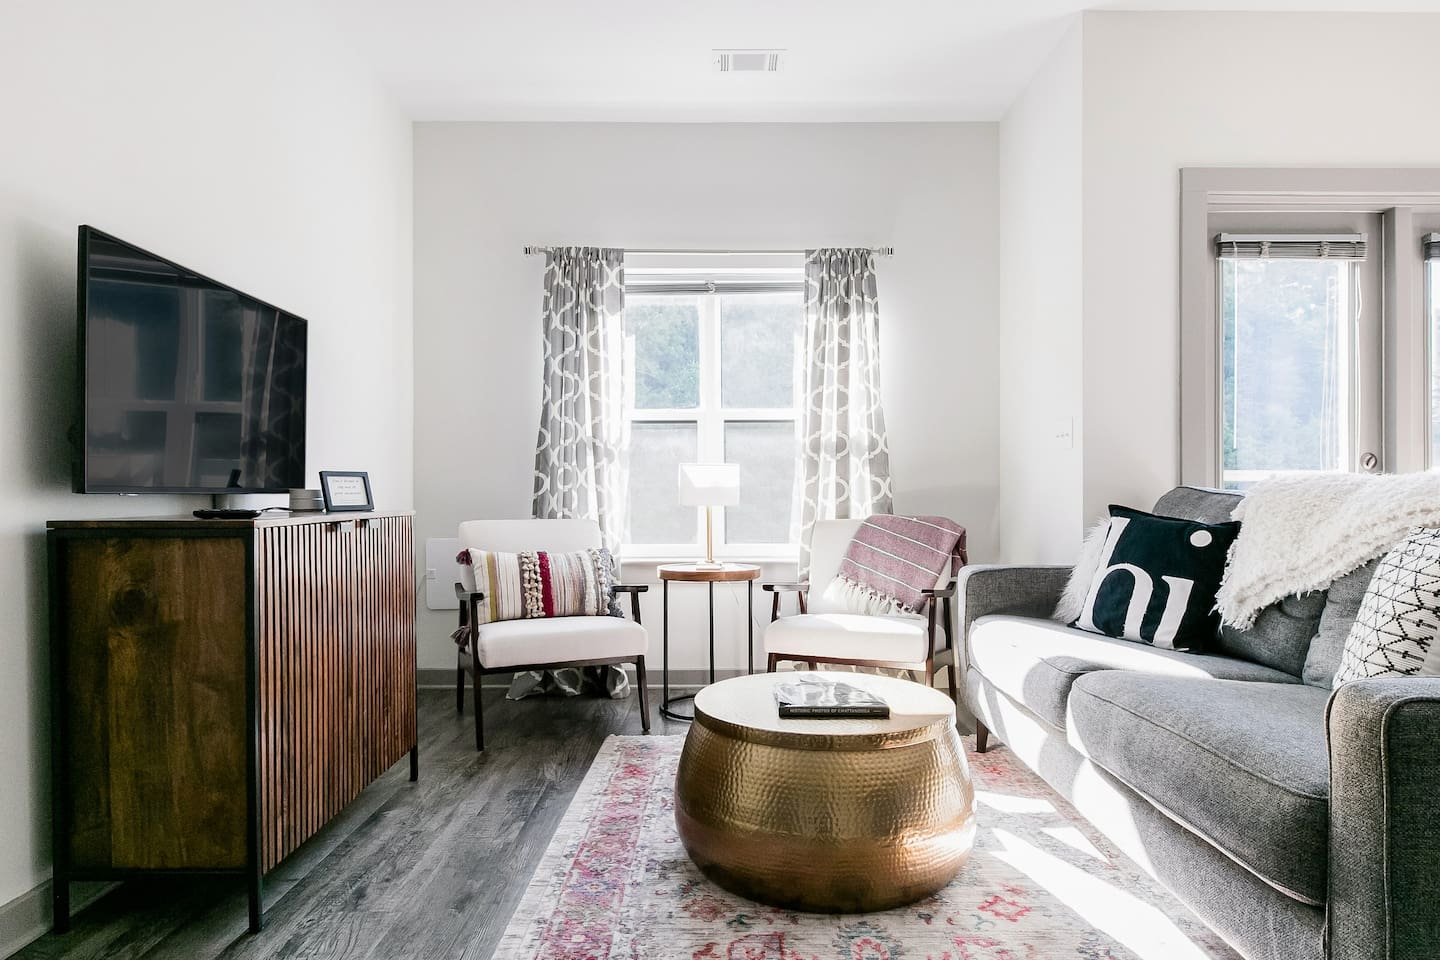 Stylish & Family-Friendly Downtown Condo with Pool - Chattanooga Airbnb TN